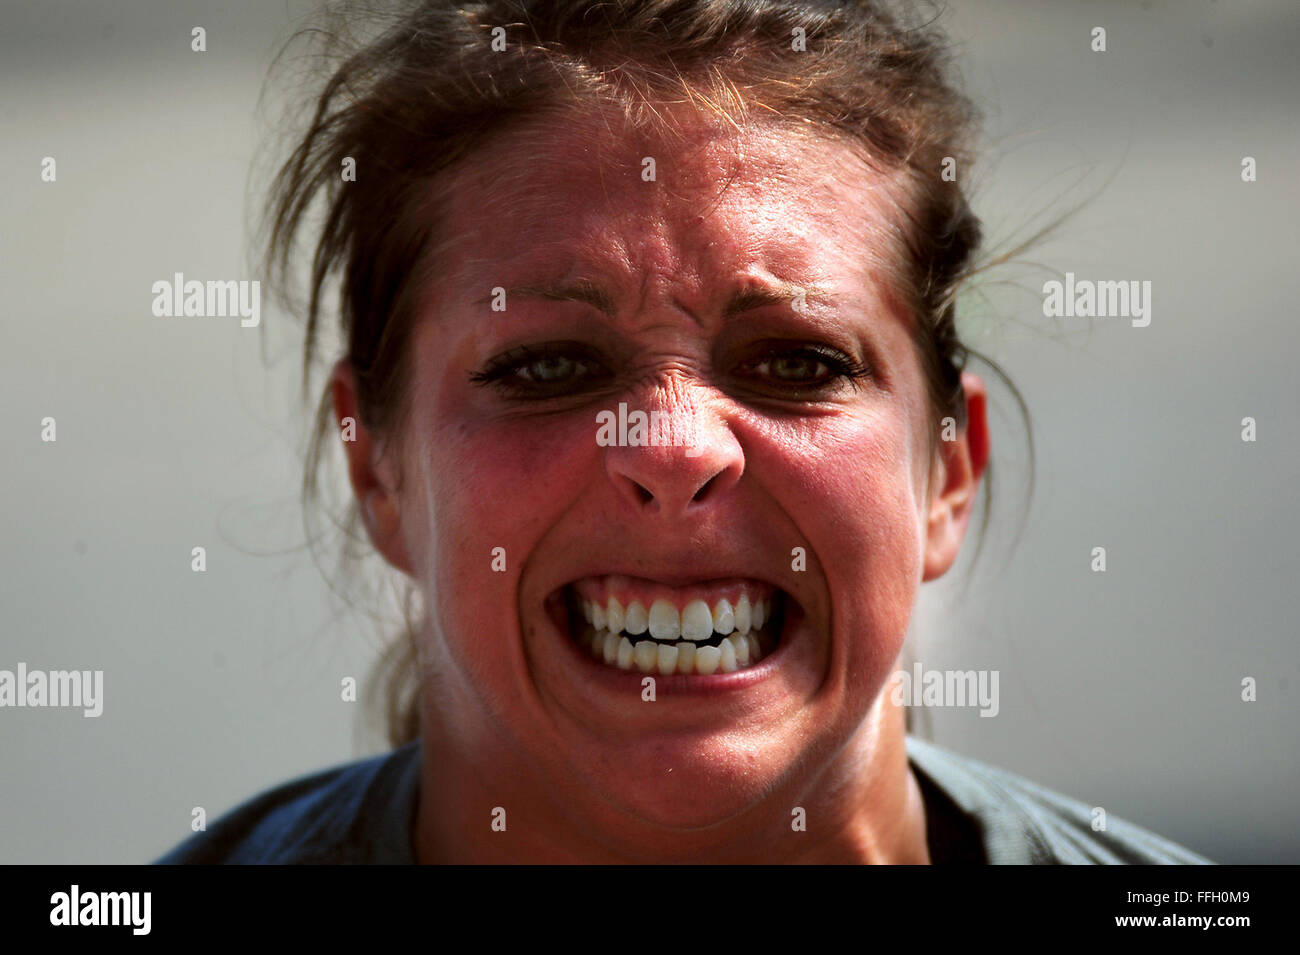 A competitor stresses during CrossFit Integrity, the Charleston CrossFit games Oct. 6, 2012, in Charleston, S.C. - Stock Image